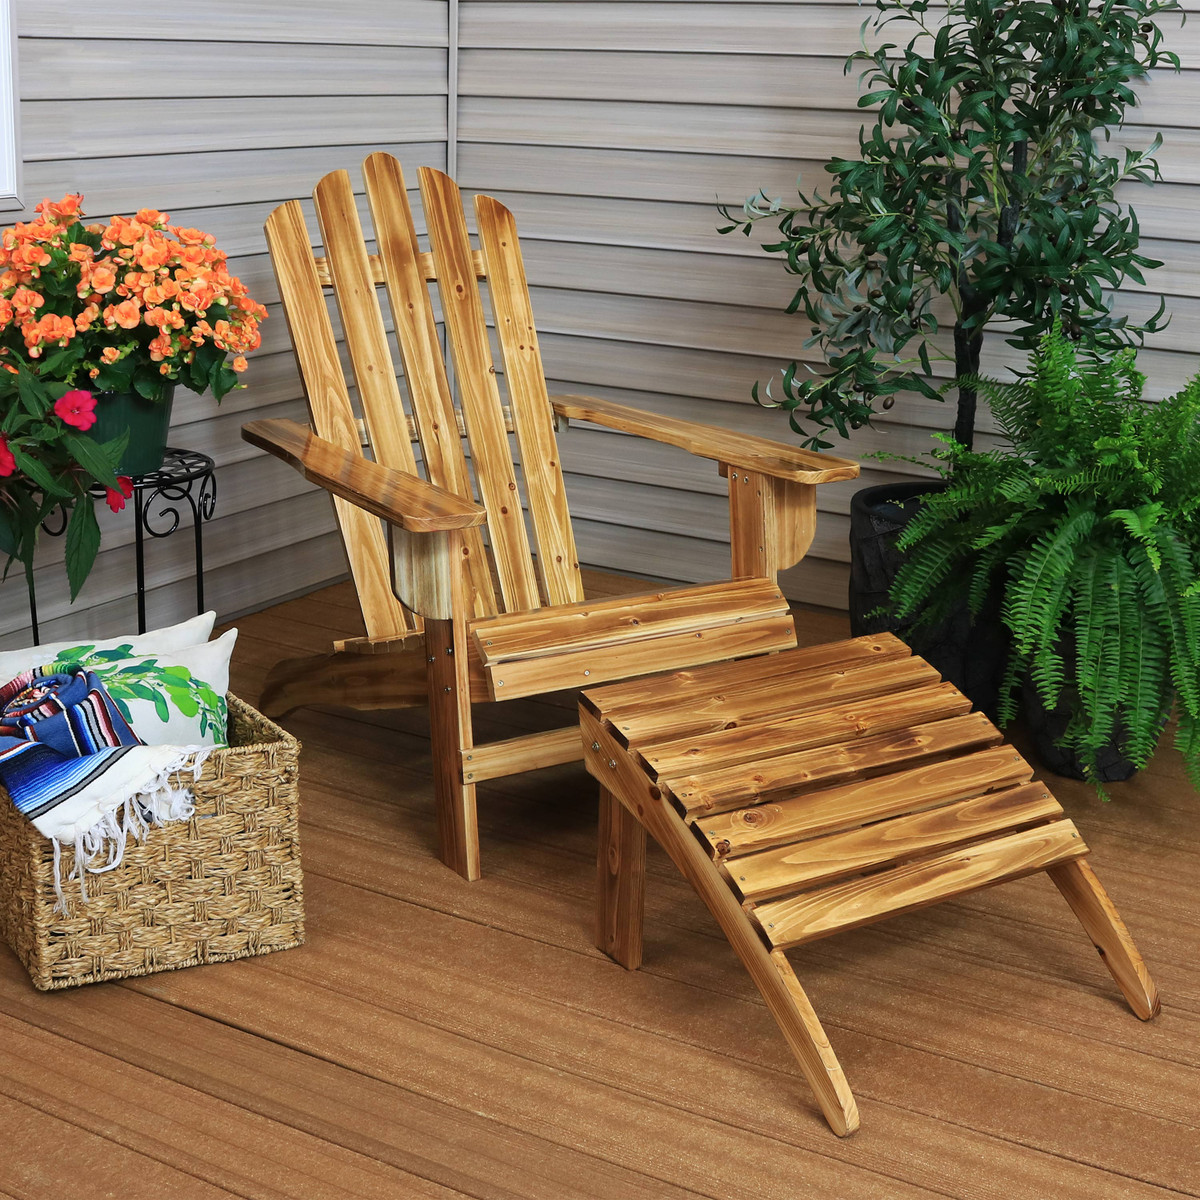 Swell Sunnydaze Rustic Wooden Outdoor Adirondack Chair And Ottoman Uwap Interior Chair Design Uwaporg